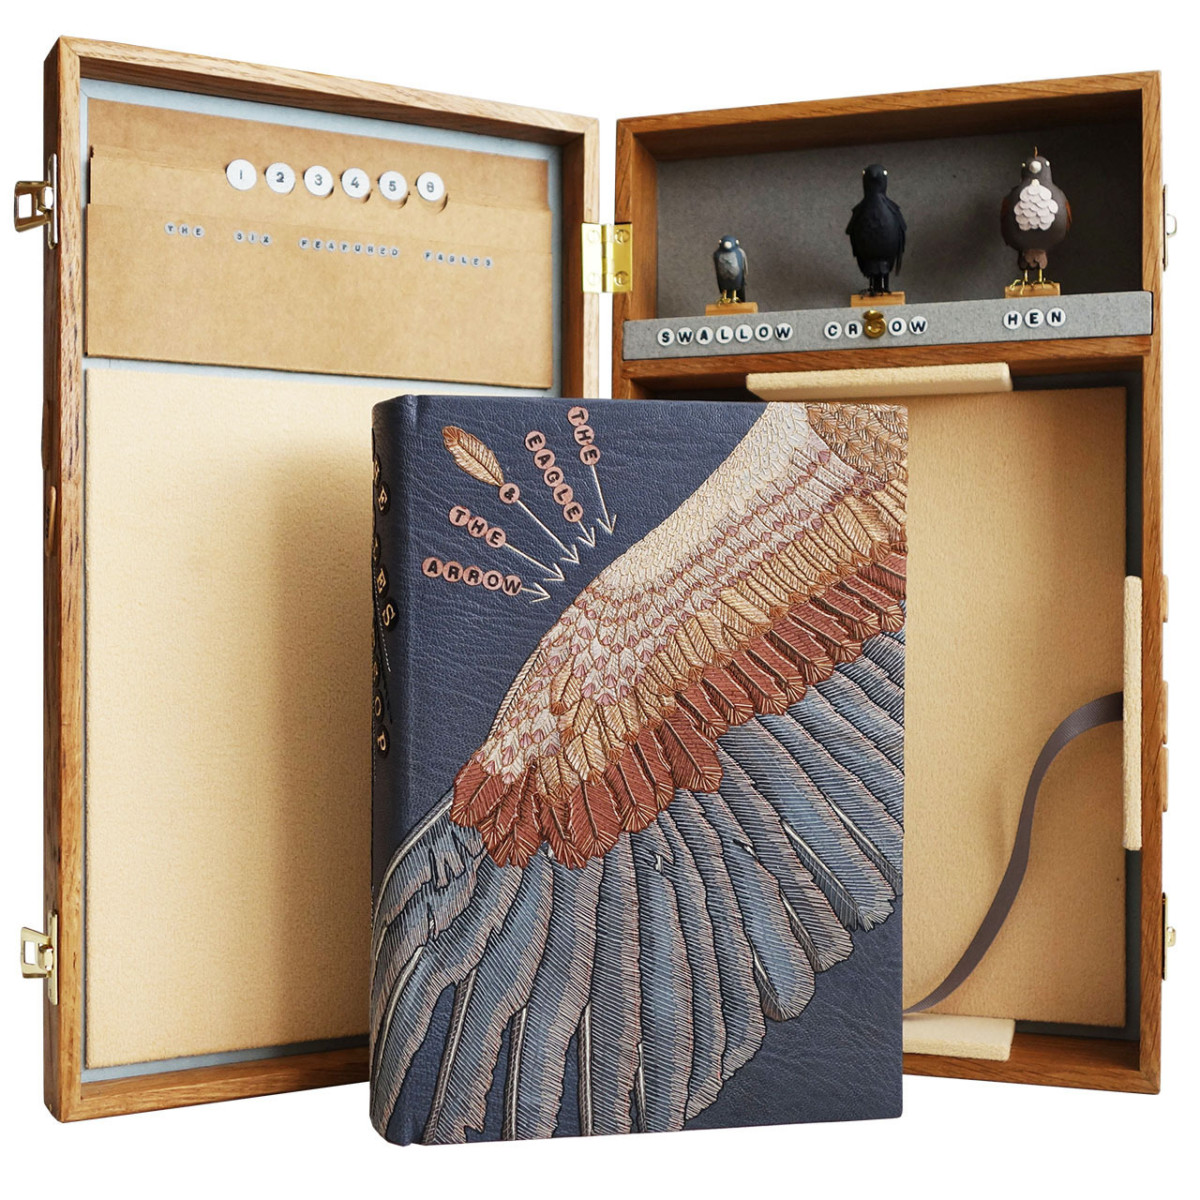 2017.08.18 - Designer Bookbinders International Competition 2017 - Distingiushed Winners - Hannah Brown - The Fables of Æsop 9